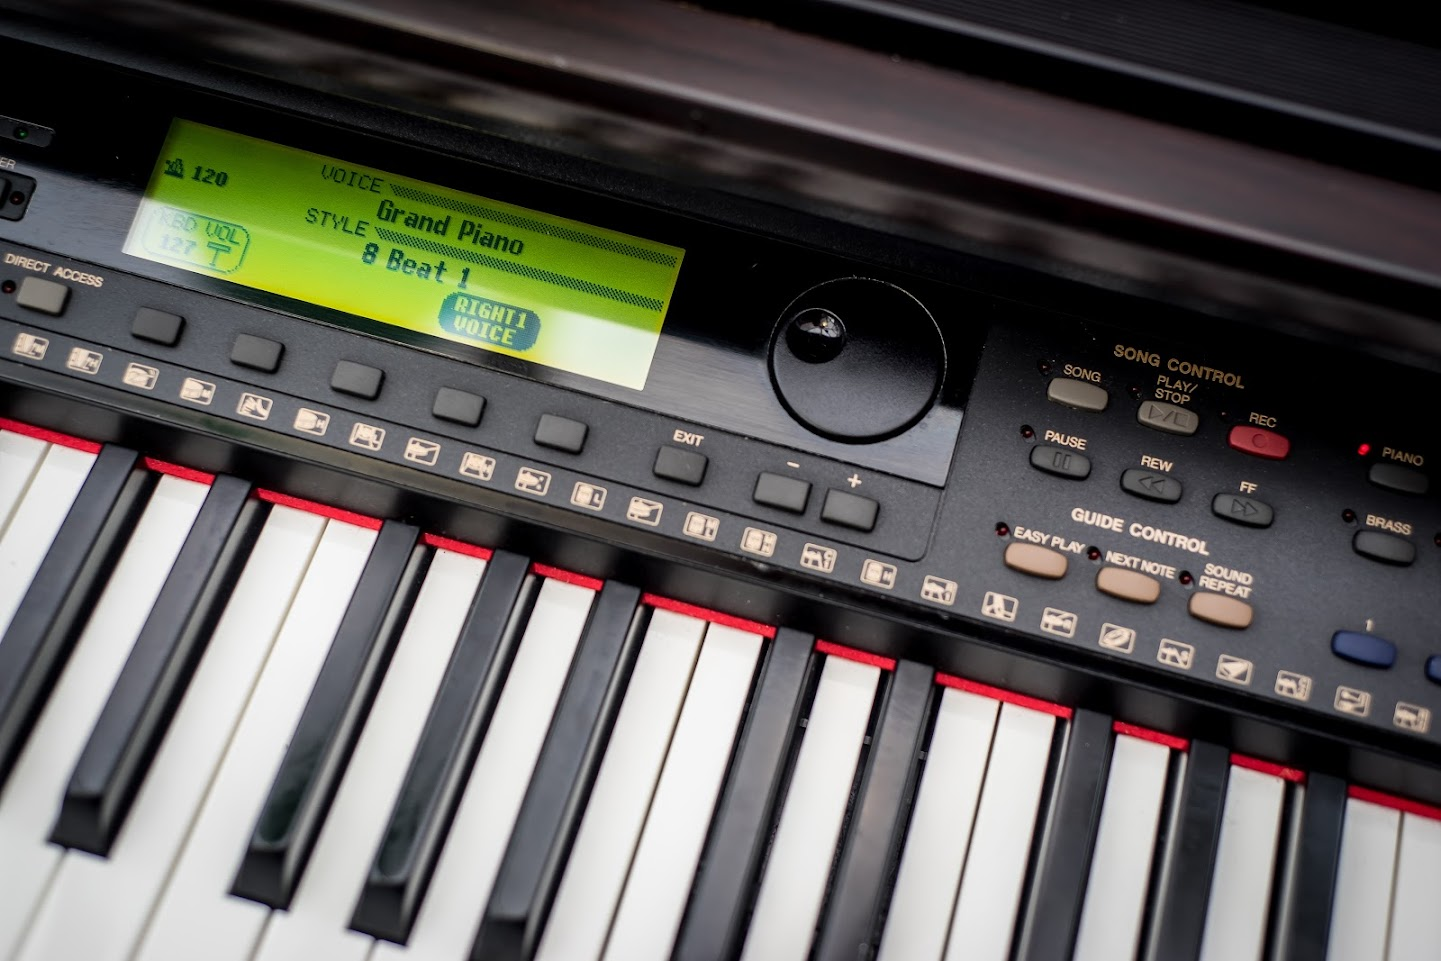 Yamaha clavinova digital full size piano 88 key weighted ghe keyboard delivery ebay for Yamaha fully weighted keyboard